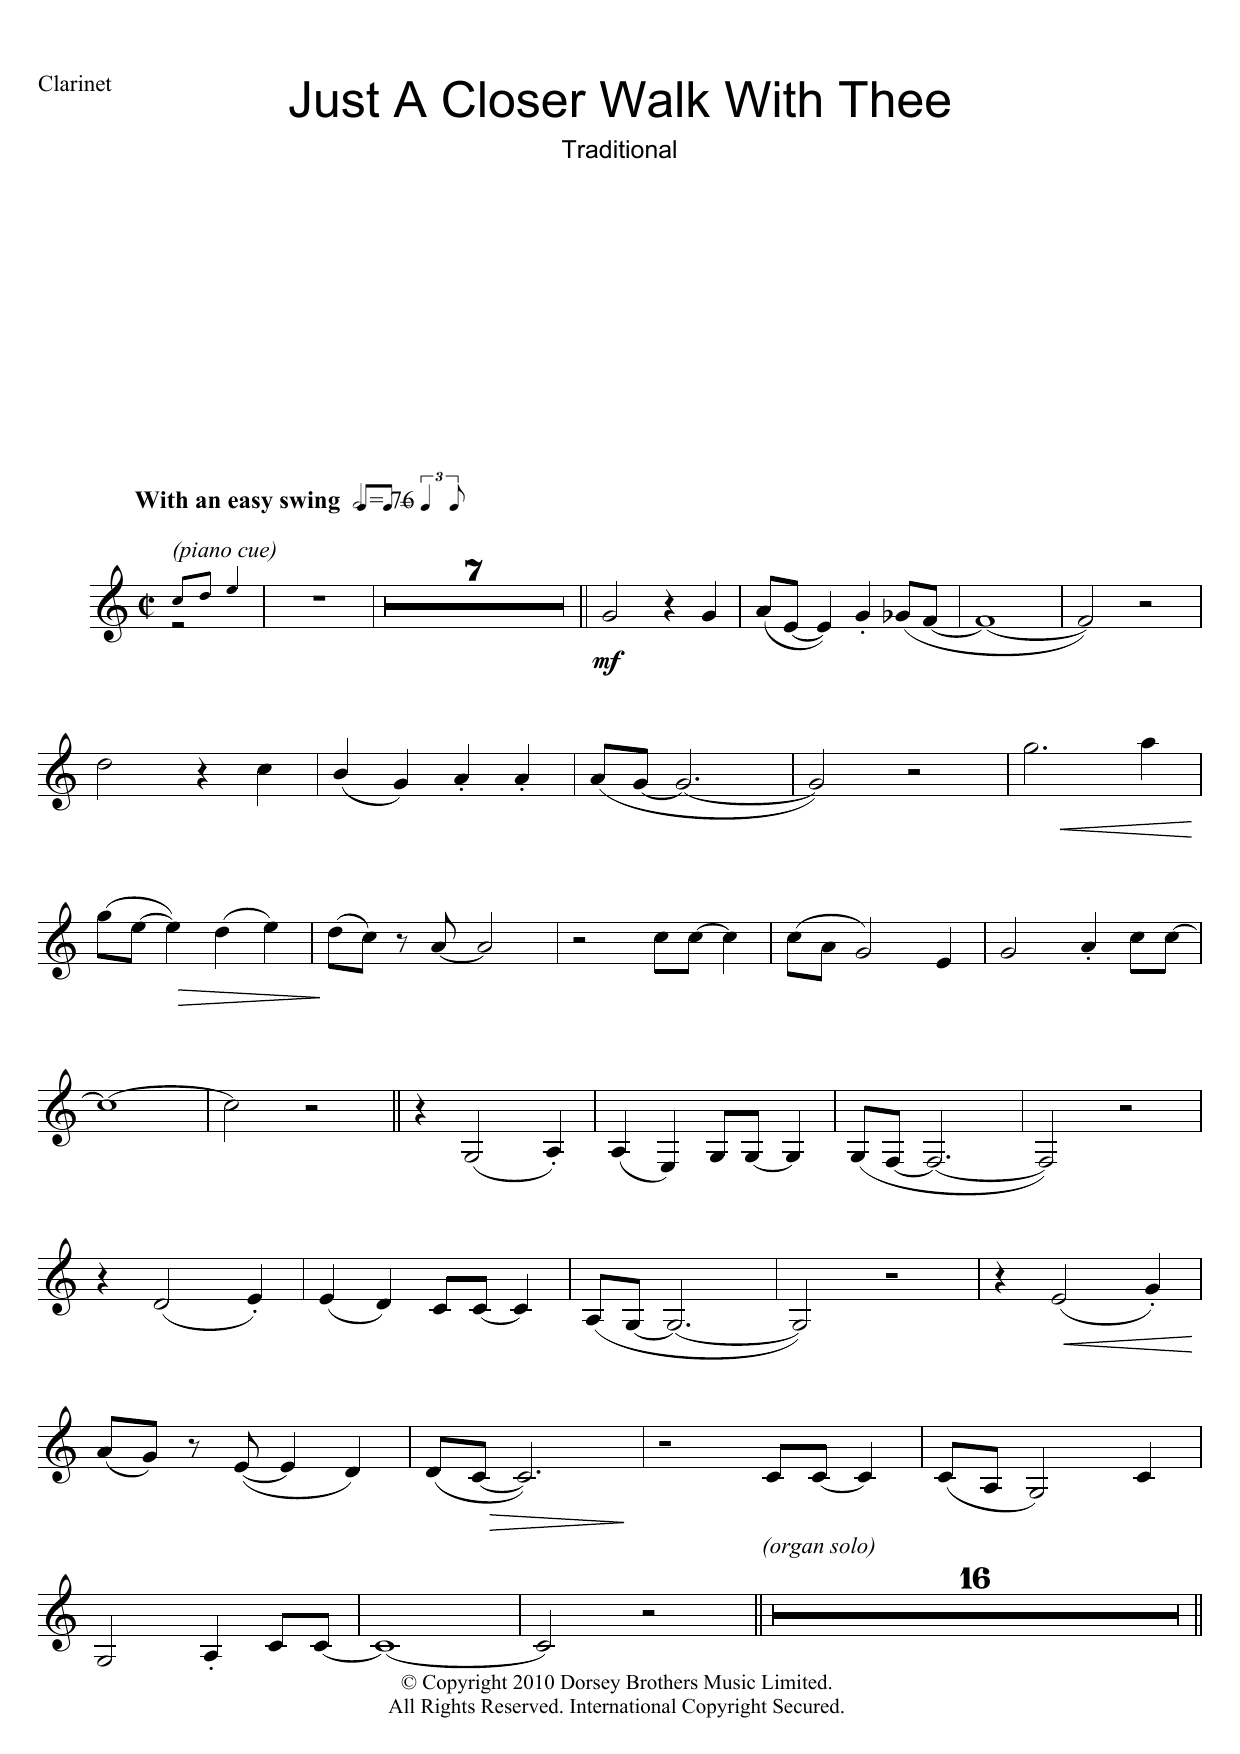 Just A Closer Walk With Thee (Clarinet Solo)